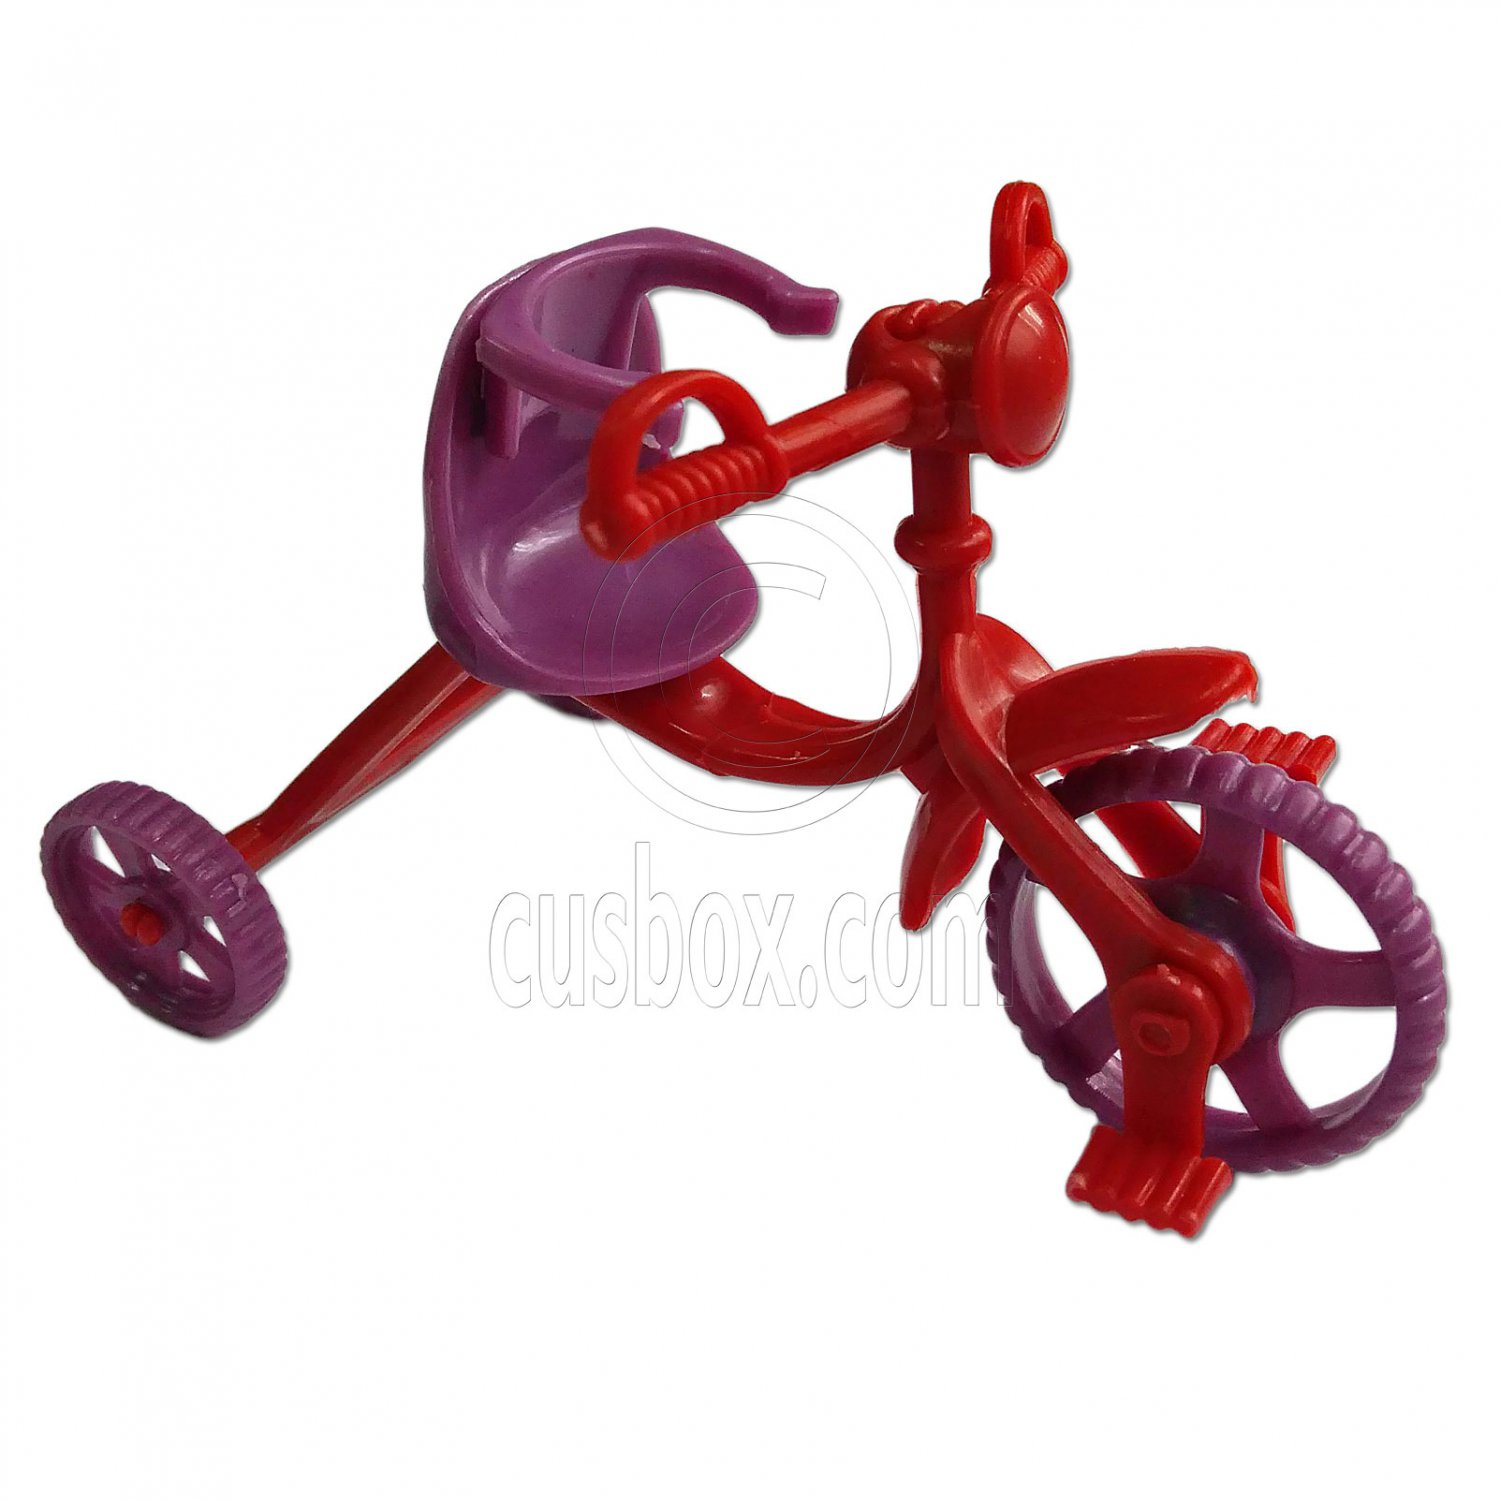 Tricycle Trike Bike 1:6 Scale for Barbie's Kelly Daughter Doll's House Miniature #13138